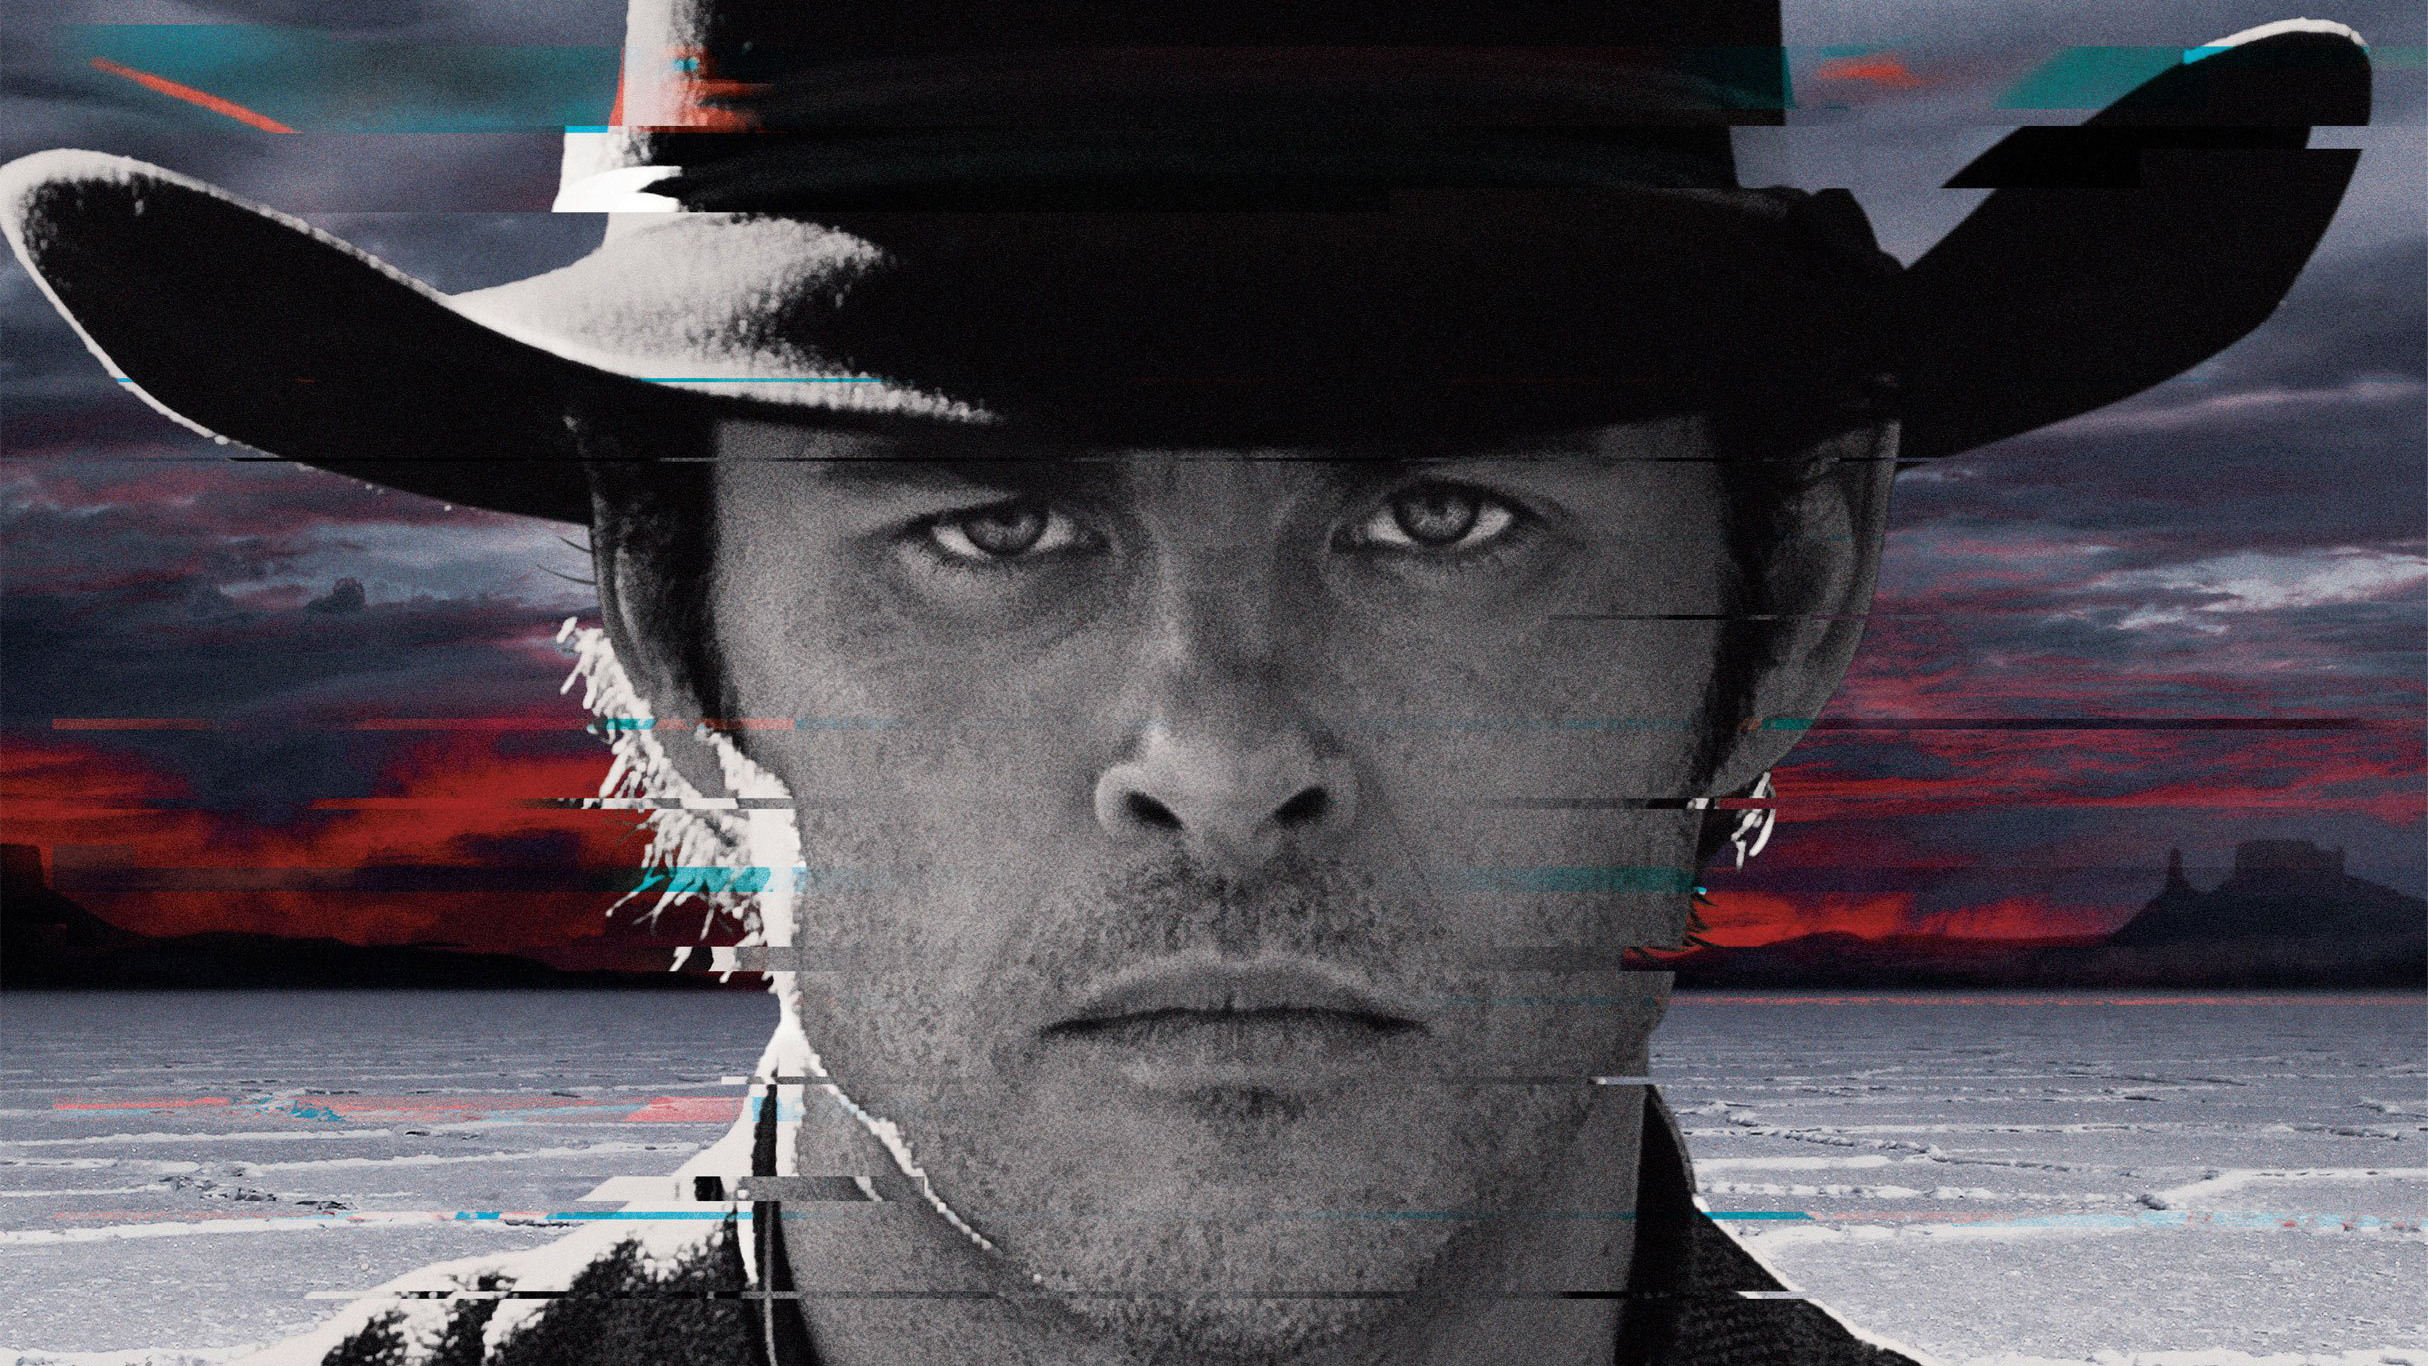 James Marsden As Teddy Flood In Westworld Season 2 Poster. HD Tv Shows. 4k Wallpapers. Images. Backgrounds. Photos and Pictures